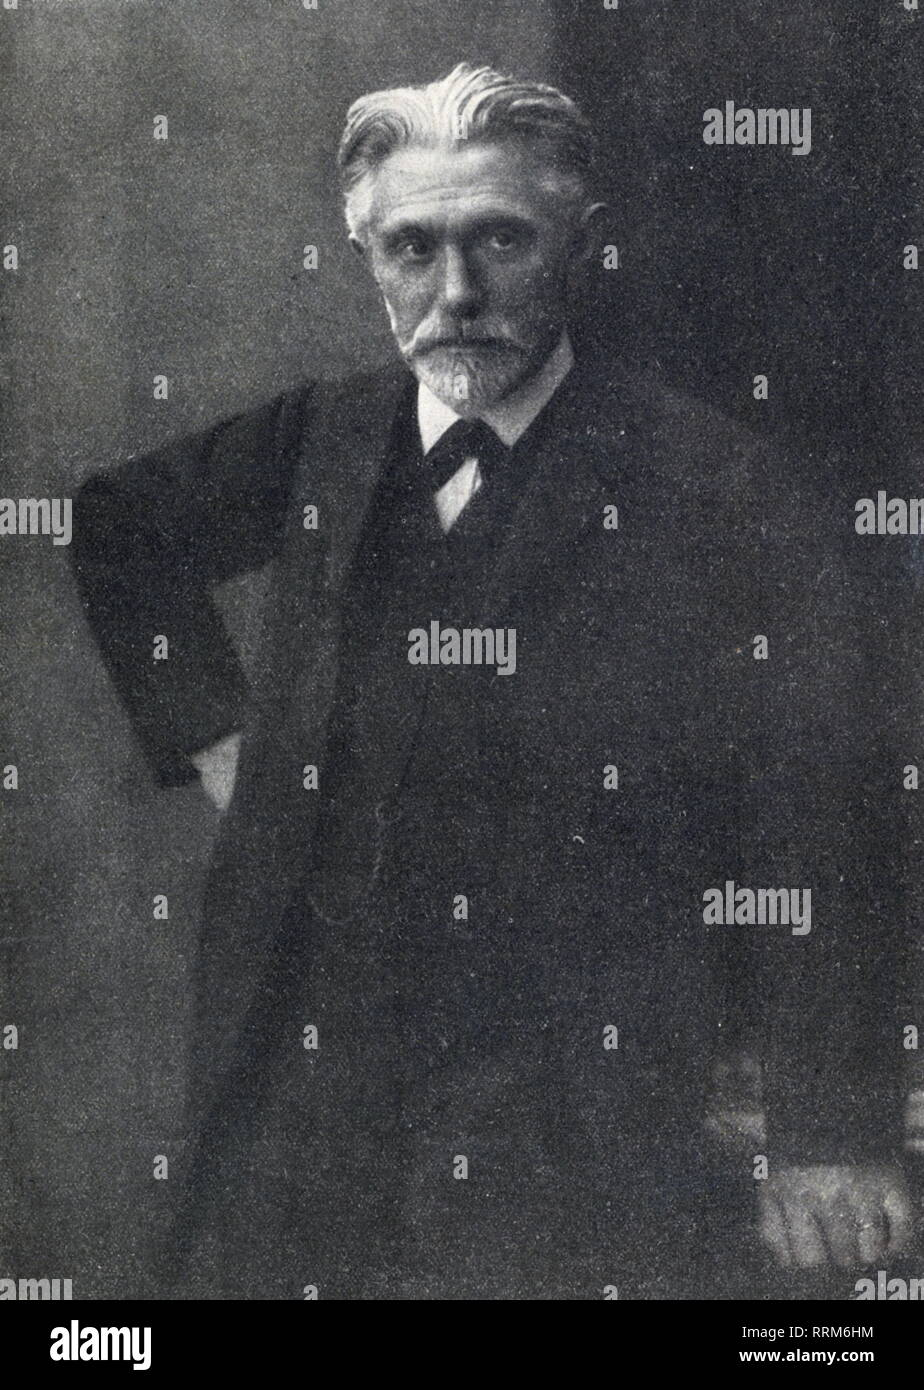 Bebel, August, 22.2.1840 - 13.8.1913, German politician and publicist, member of the German Reichstag 1871 - 1881 and 1883 - 1913, half-length, circa 1895, published to his death, 'Die Zeit im Bild', August 1913, Additional-Rights-Clearance-Info-Not-Available - Stock Image